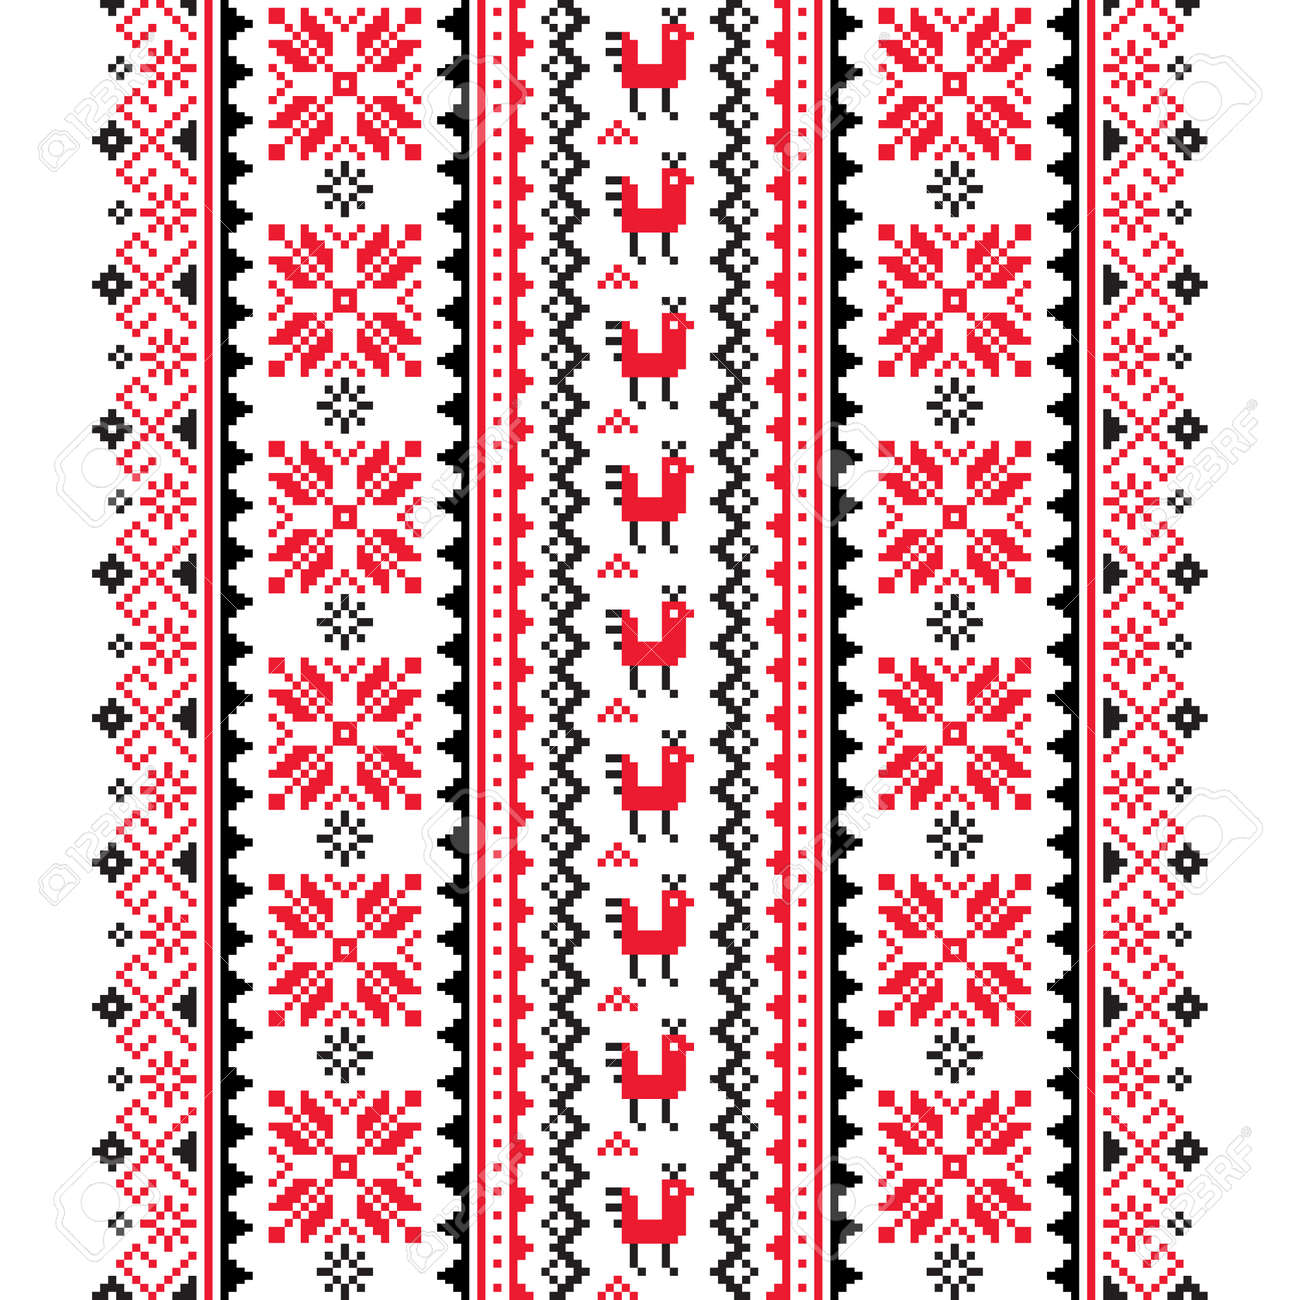 Ukrainian, Belarusian folk art vector seamless pattern in red and black, inspired by traditional cross-stitch design Vyshyvanka - 157050220